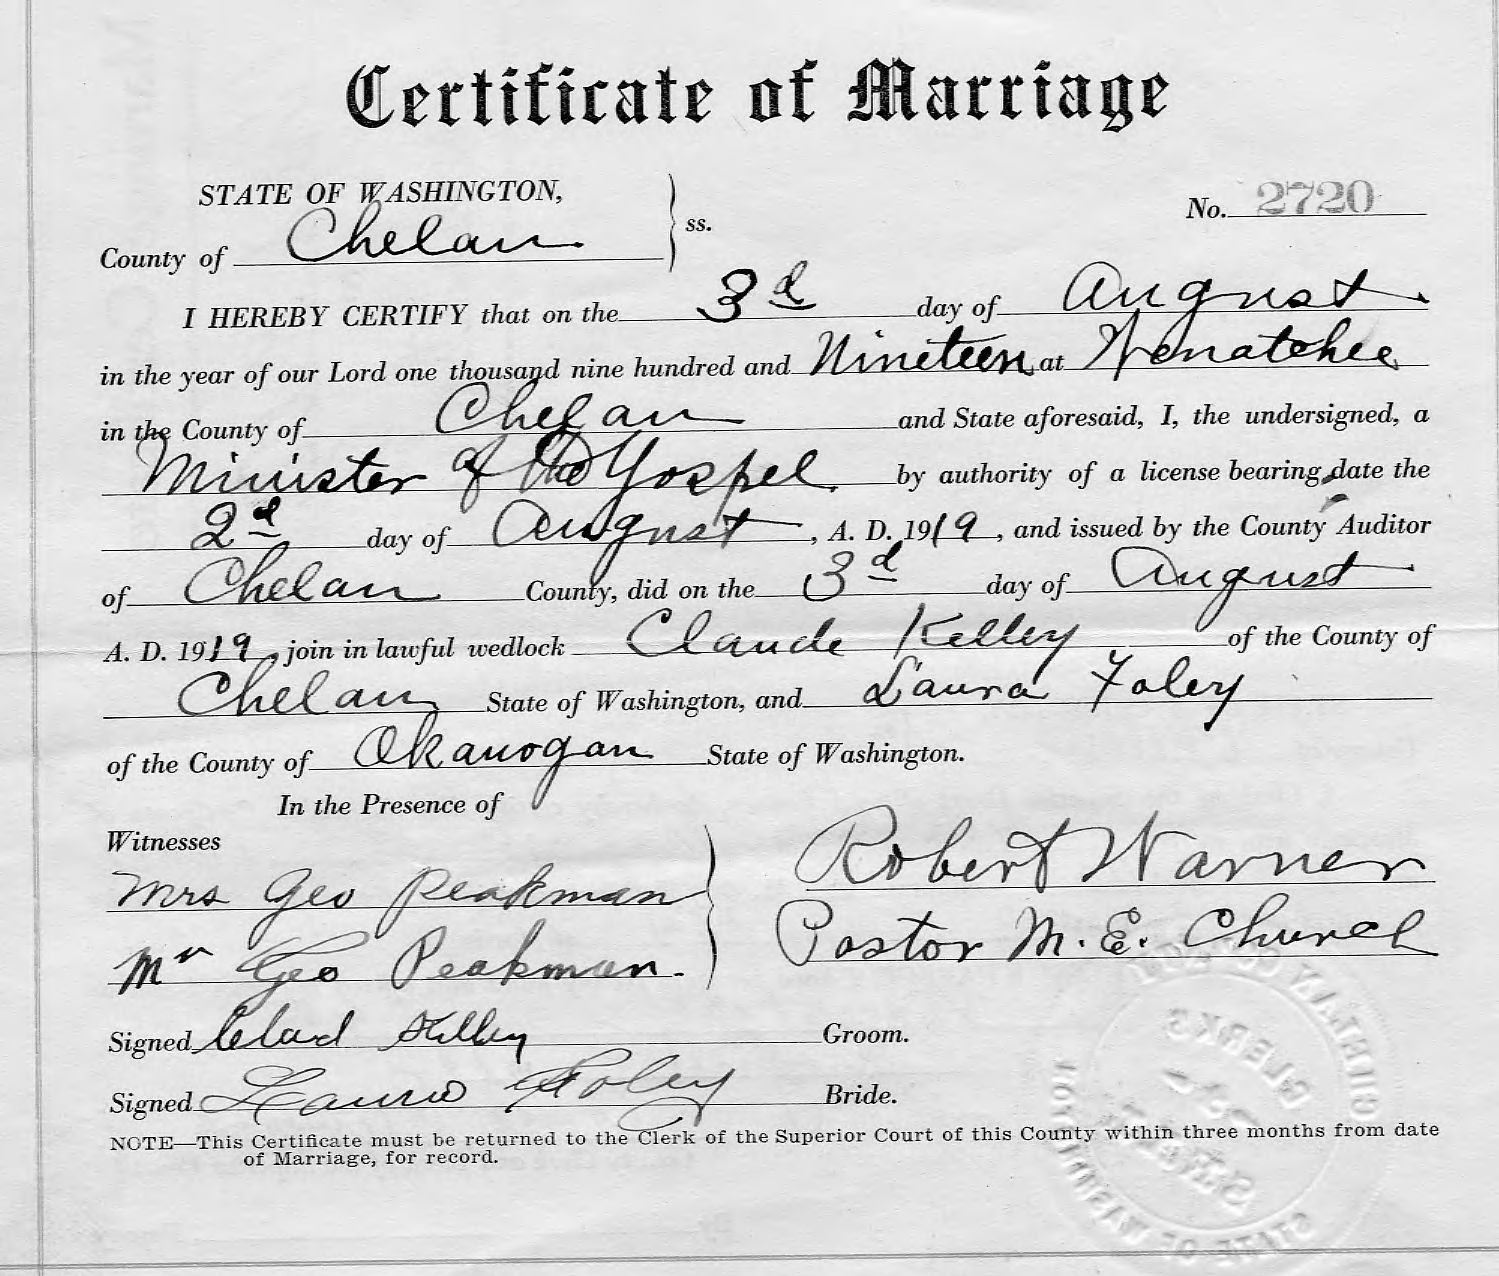 Myhamiltonfamily selected hamilton family documents page 8 laura foley and claude kelley marriage certificate chelan wa 8 3 1919 1betcityfo Choice Image